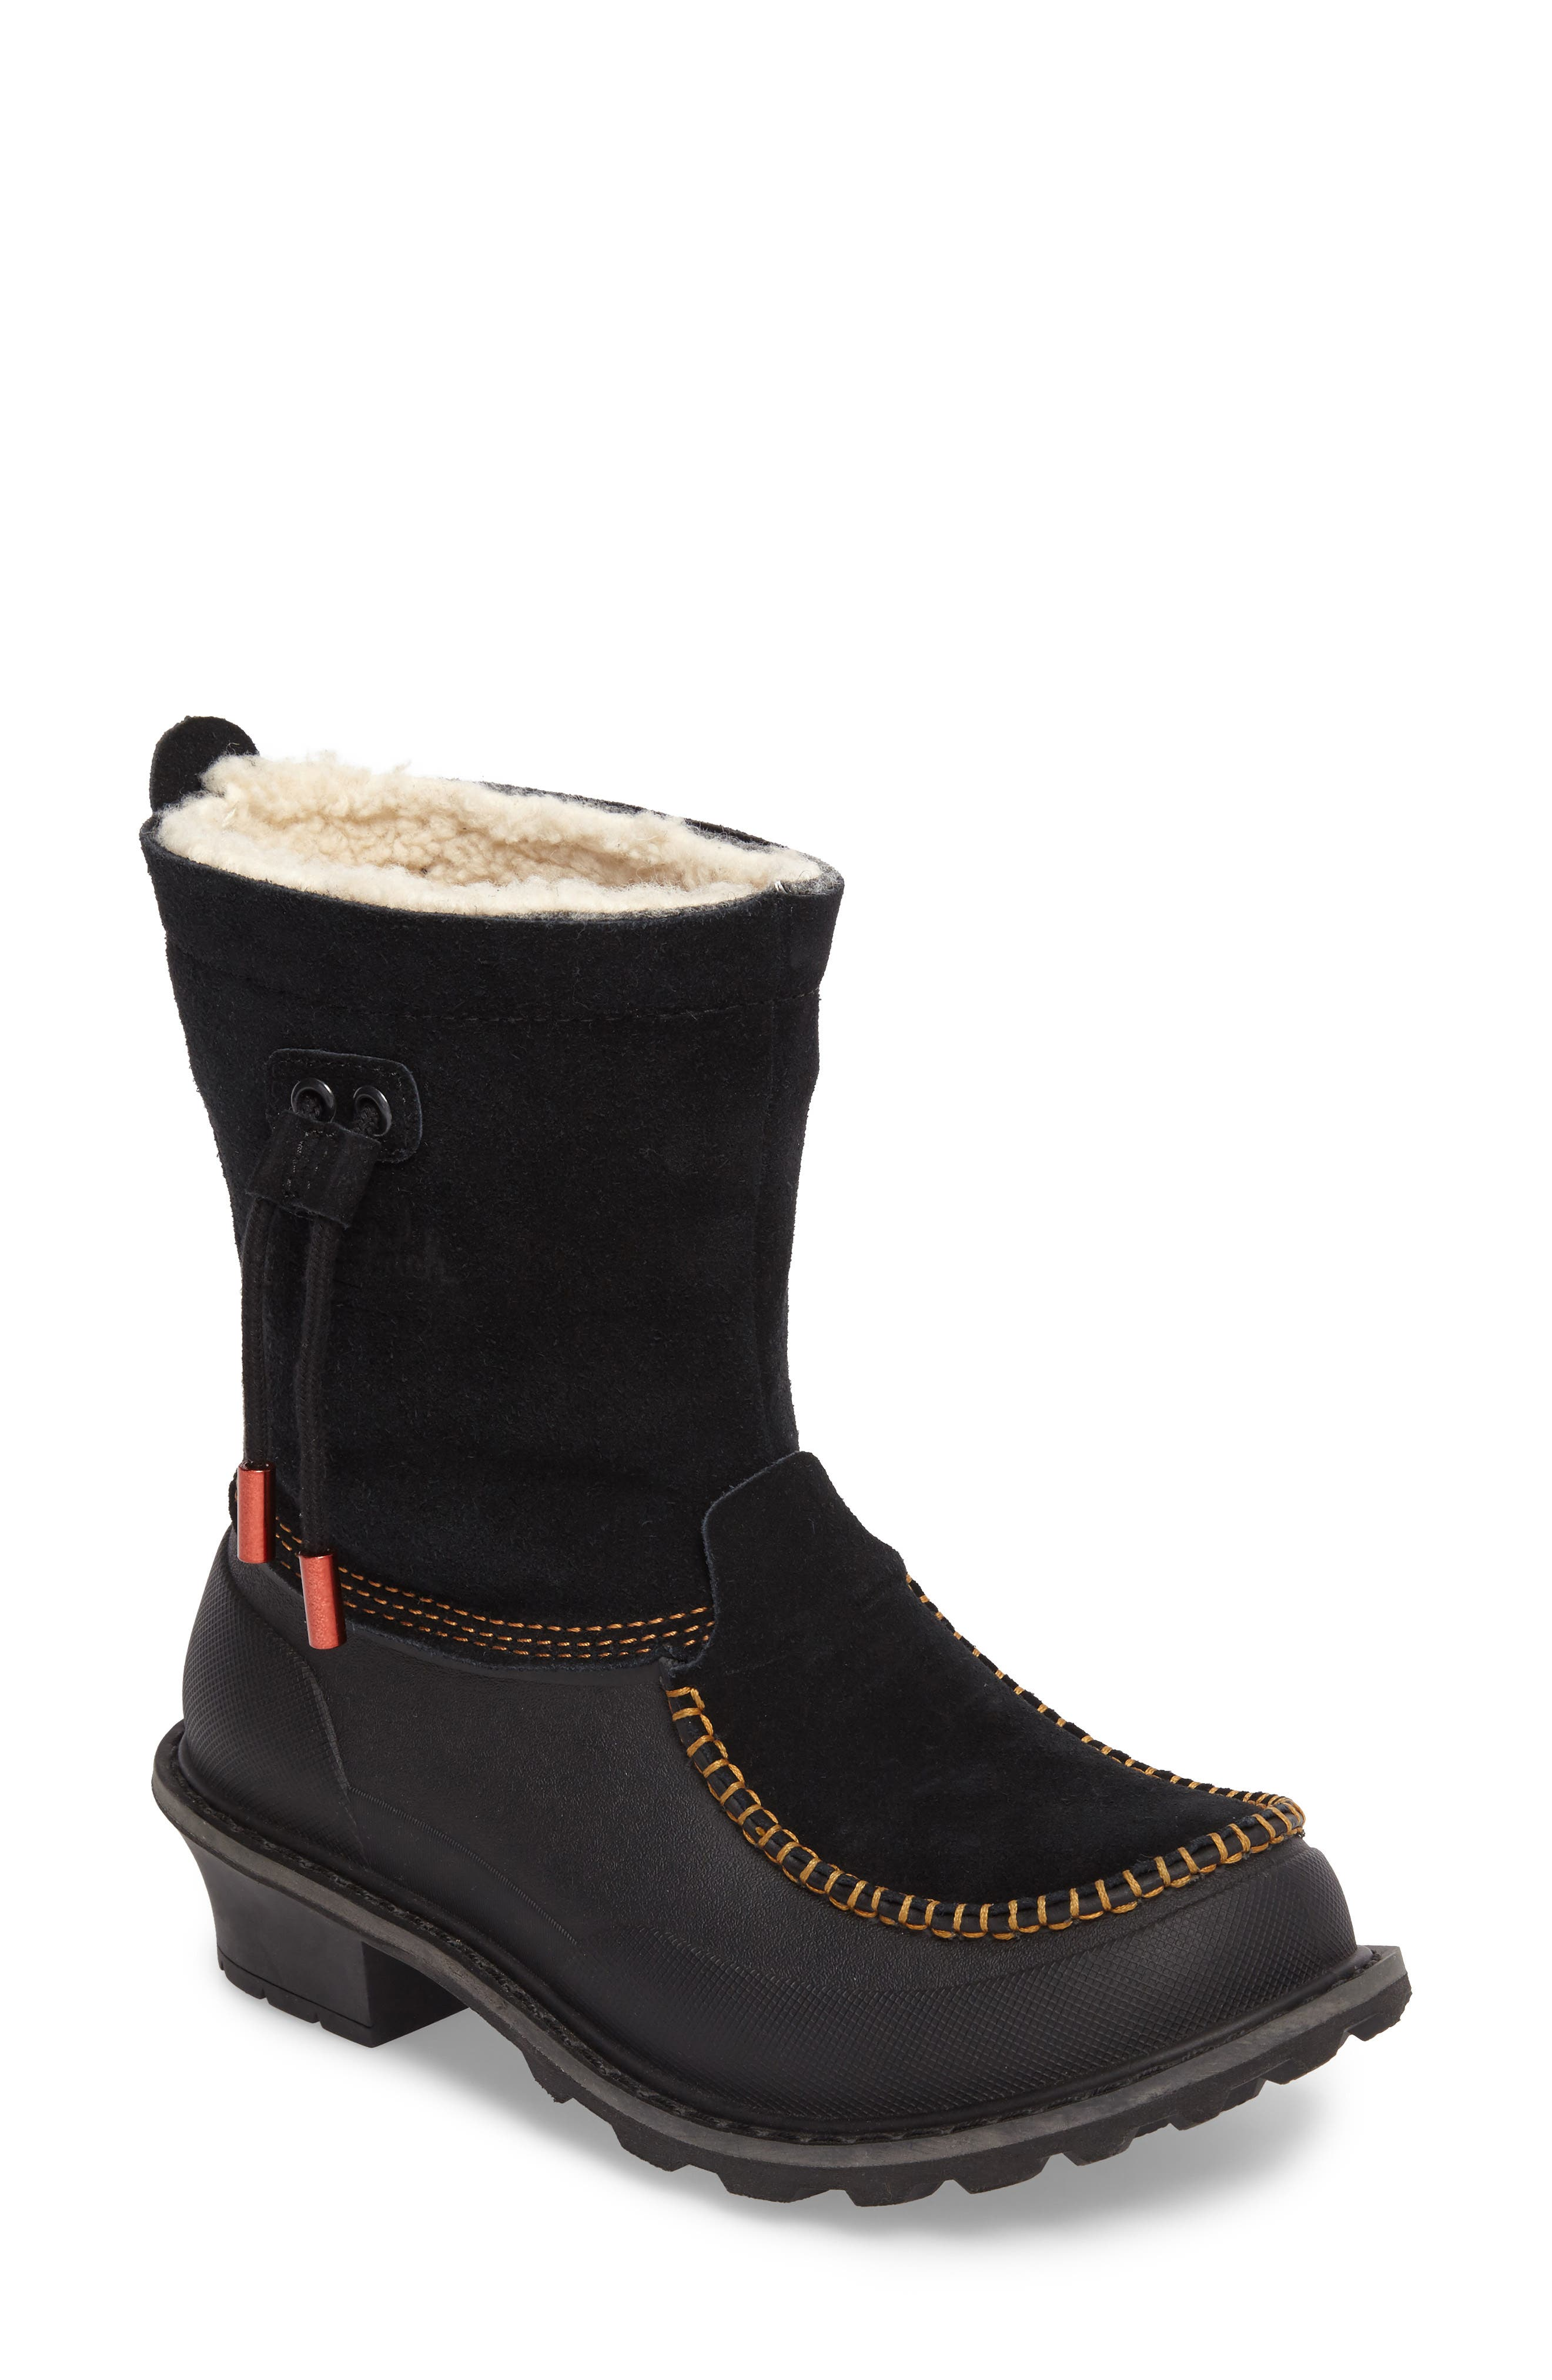 Fully Wooly Waterproof Winter Boot,                         Main,                         color,